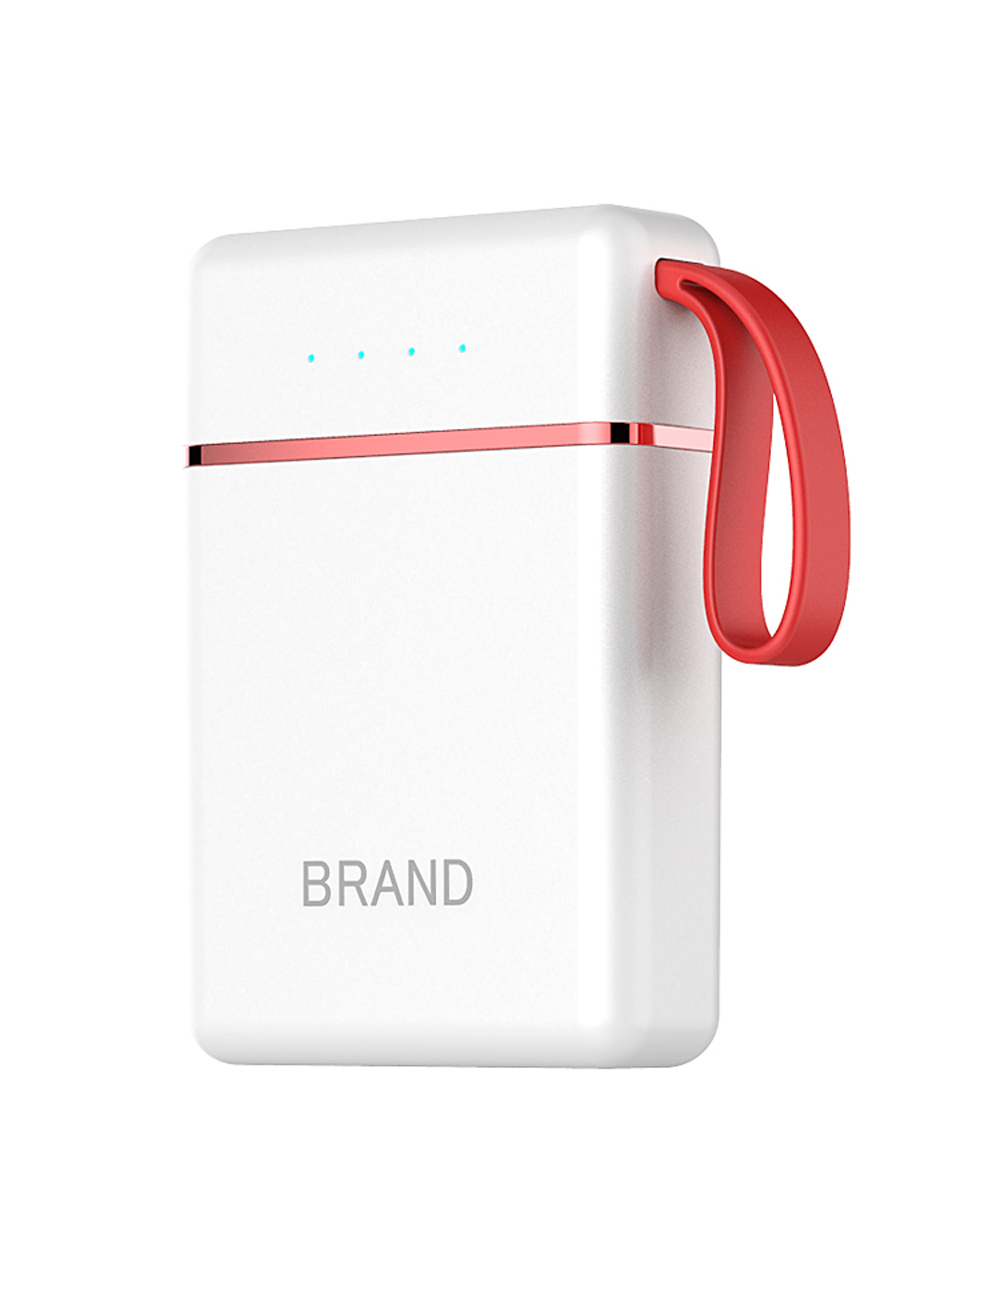 power bank charger portable